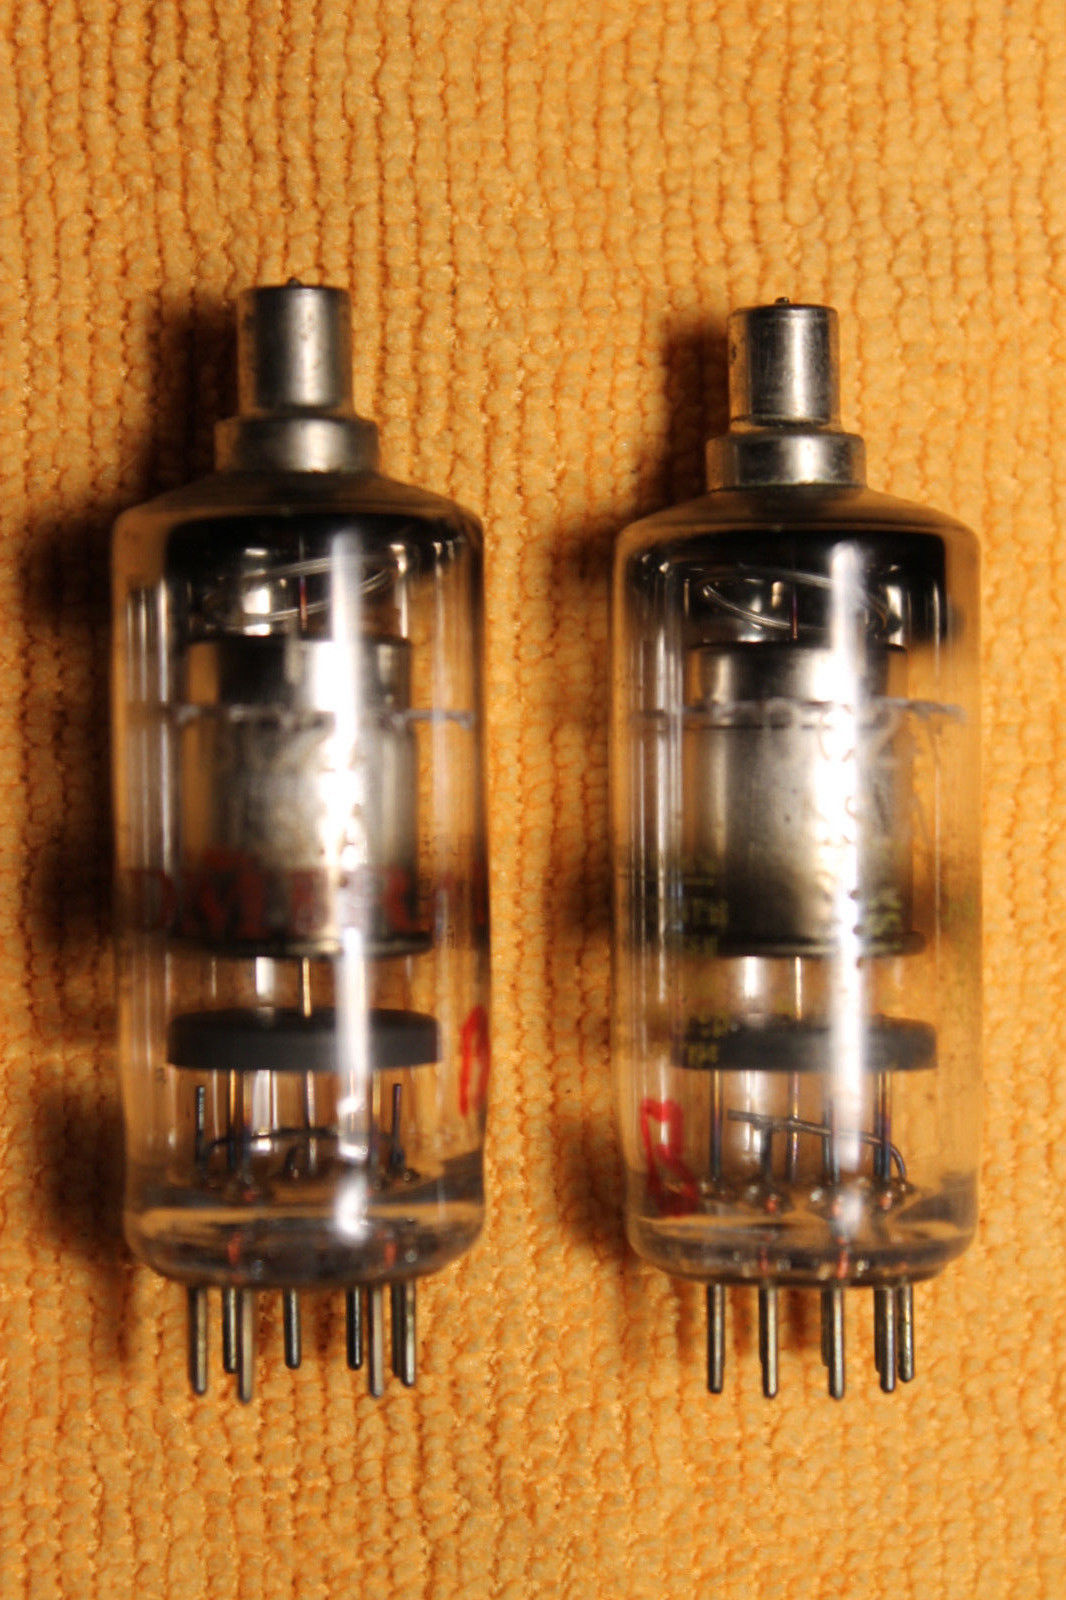 Vintage Radio Vacuum Tube (one): 1BC2A - Tested Good